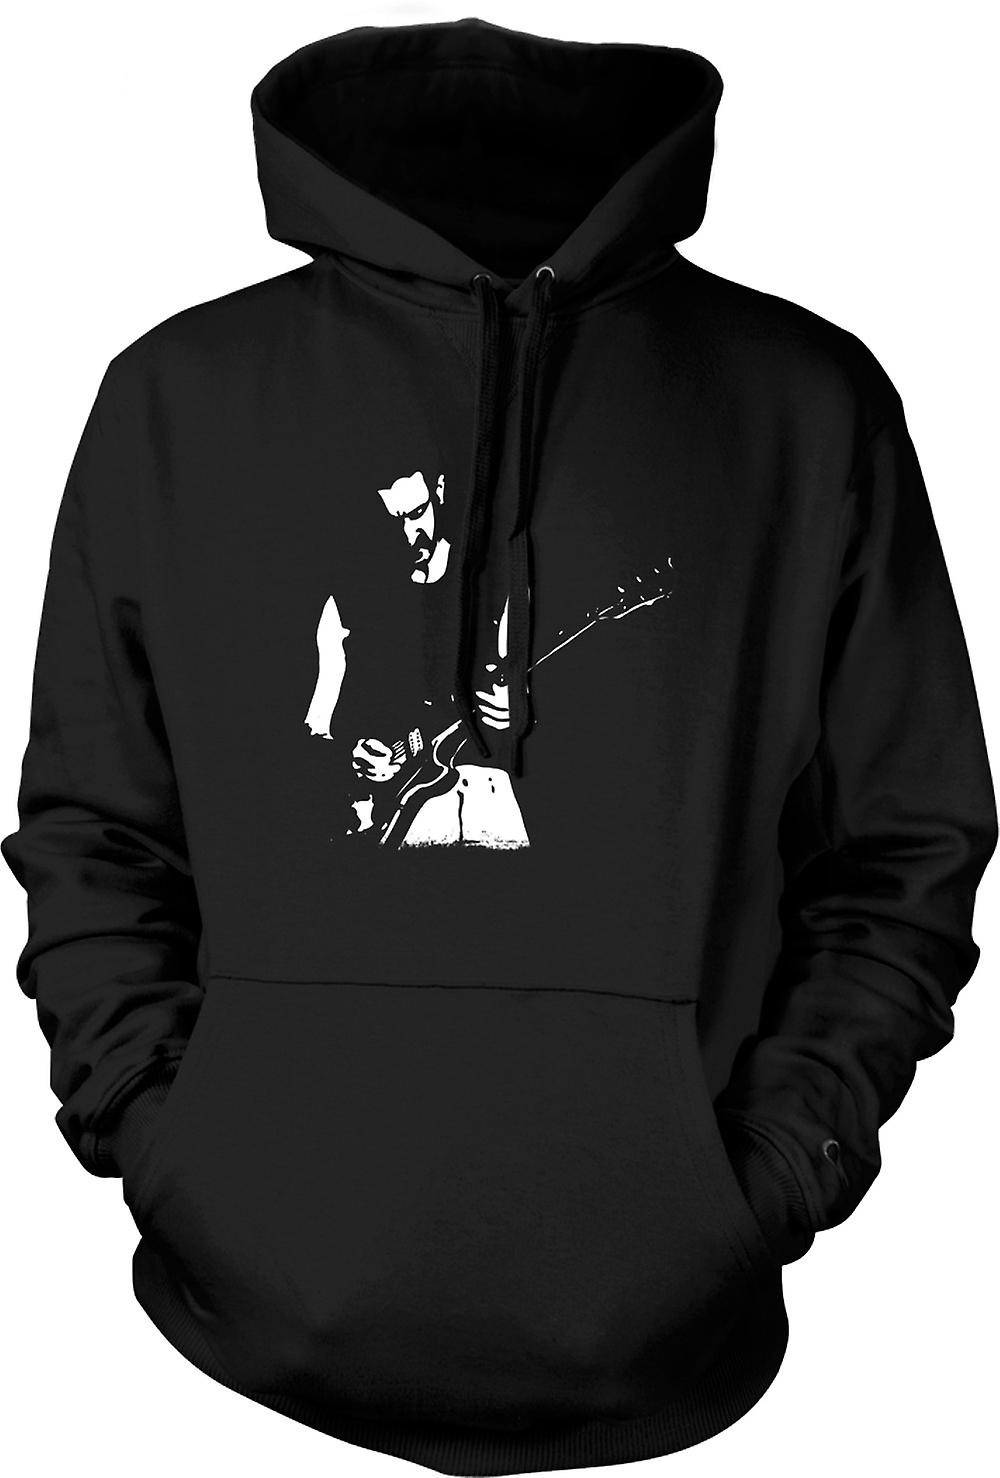 Barn Hoodie - Frank Zappa Rock - Pop Art